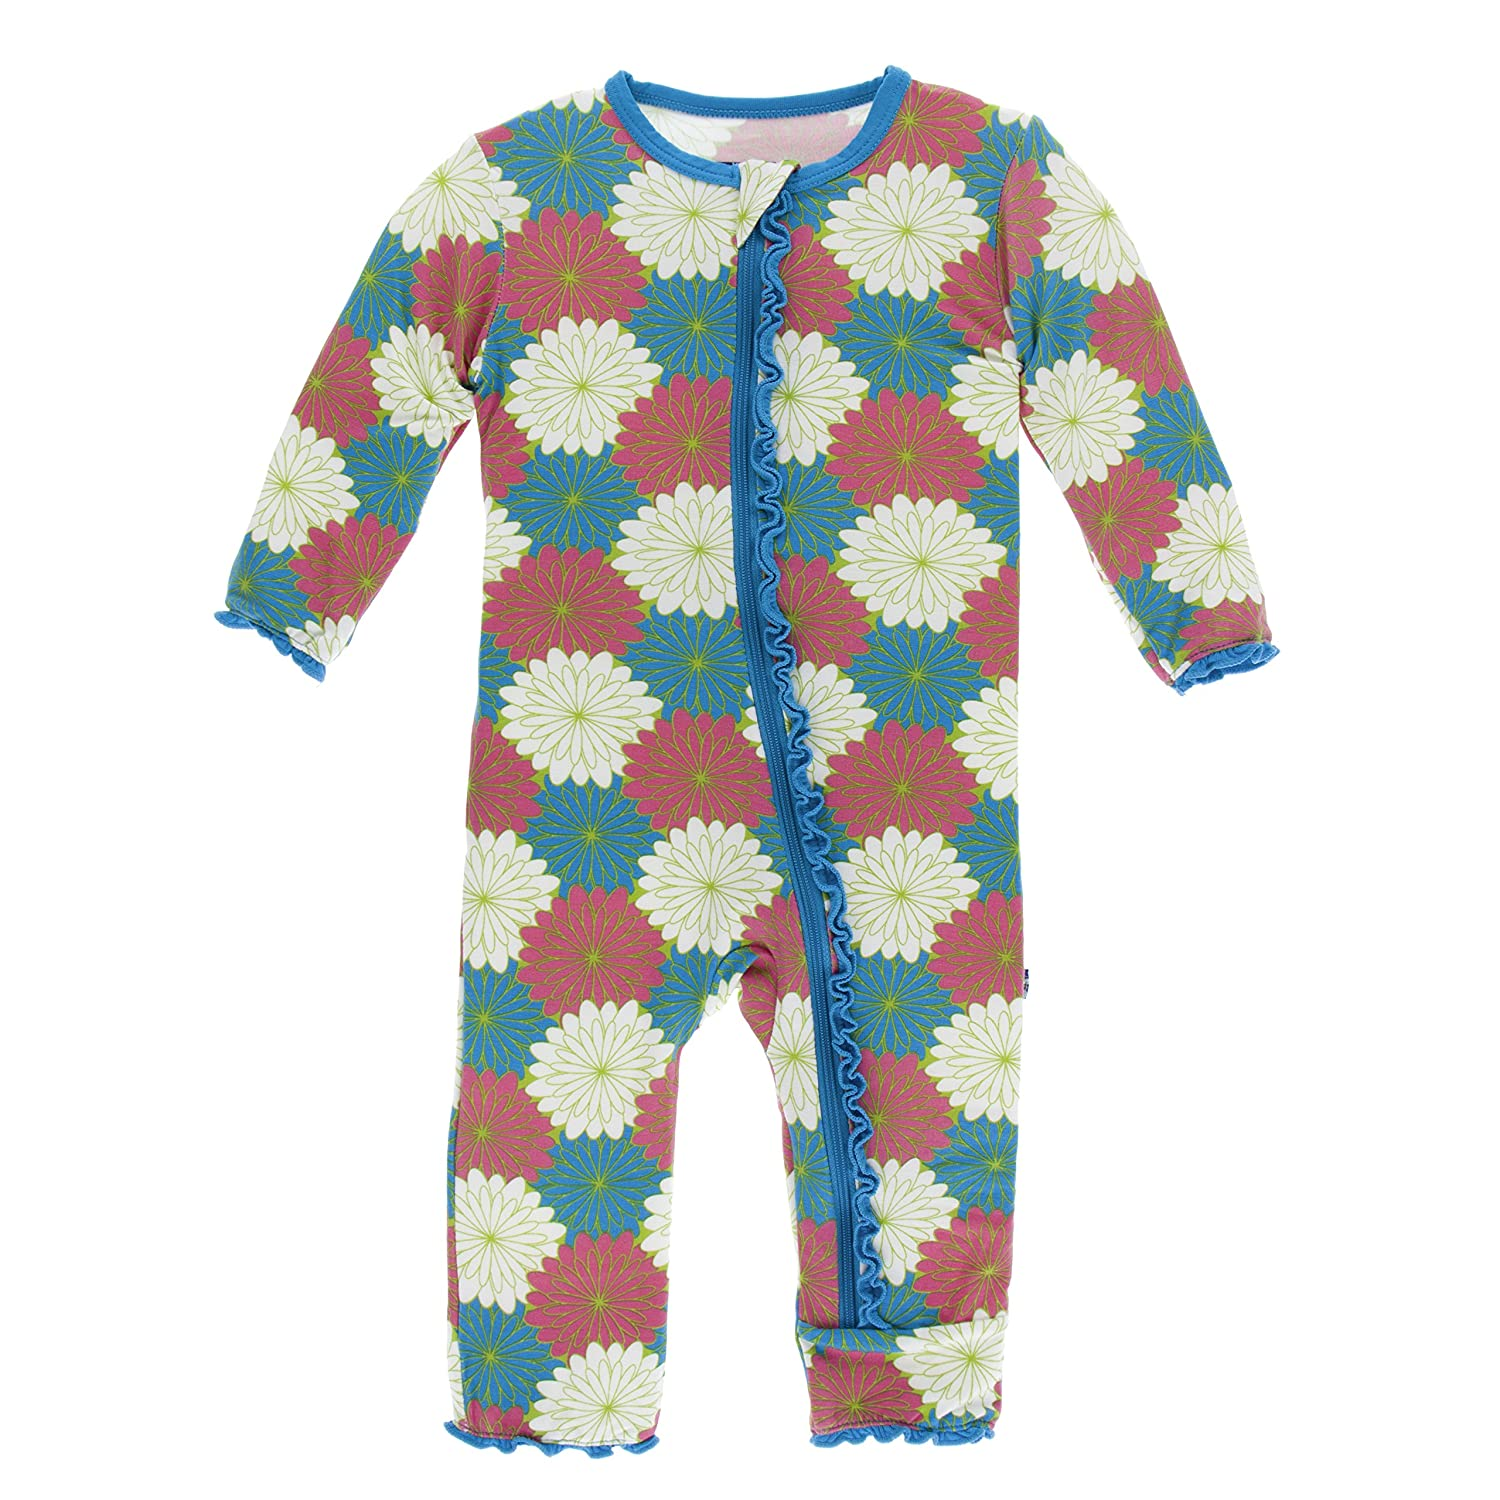 Kickee Pants Print Muffin Ruffle Coverall with Zipper in Tropical Flowers 4T